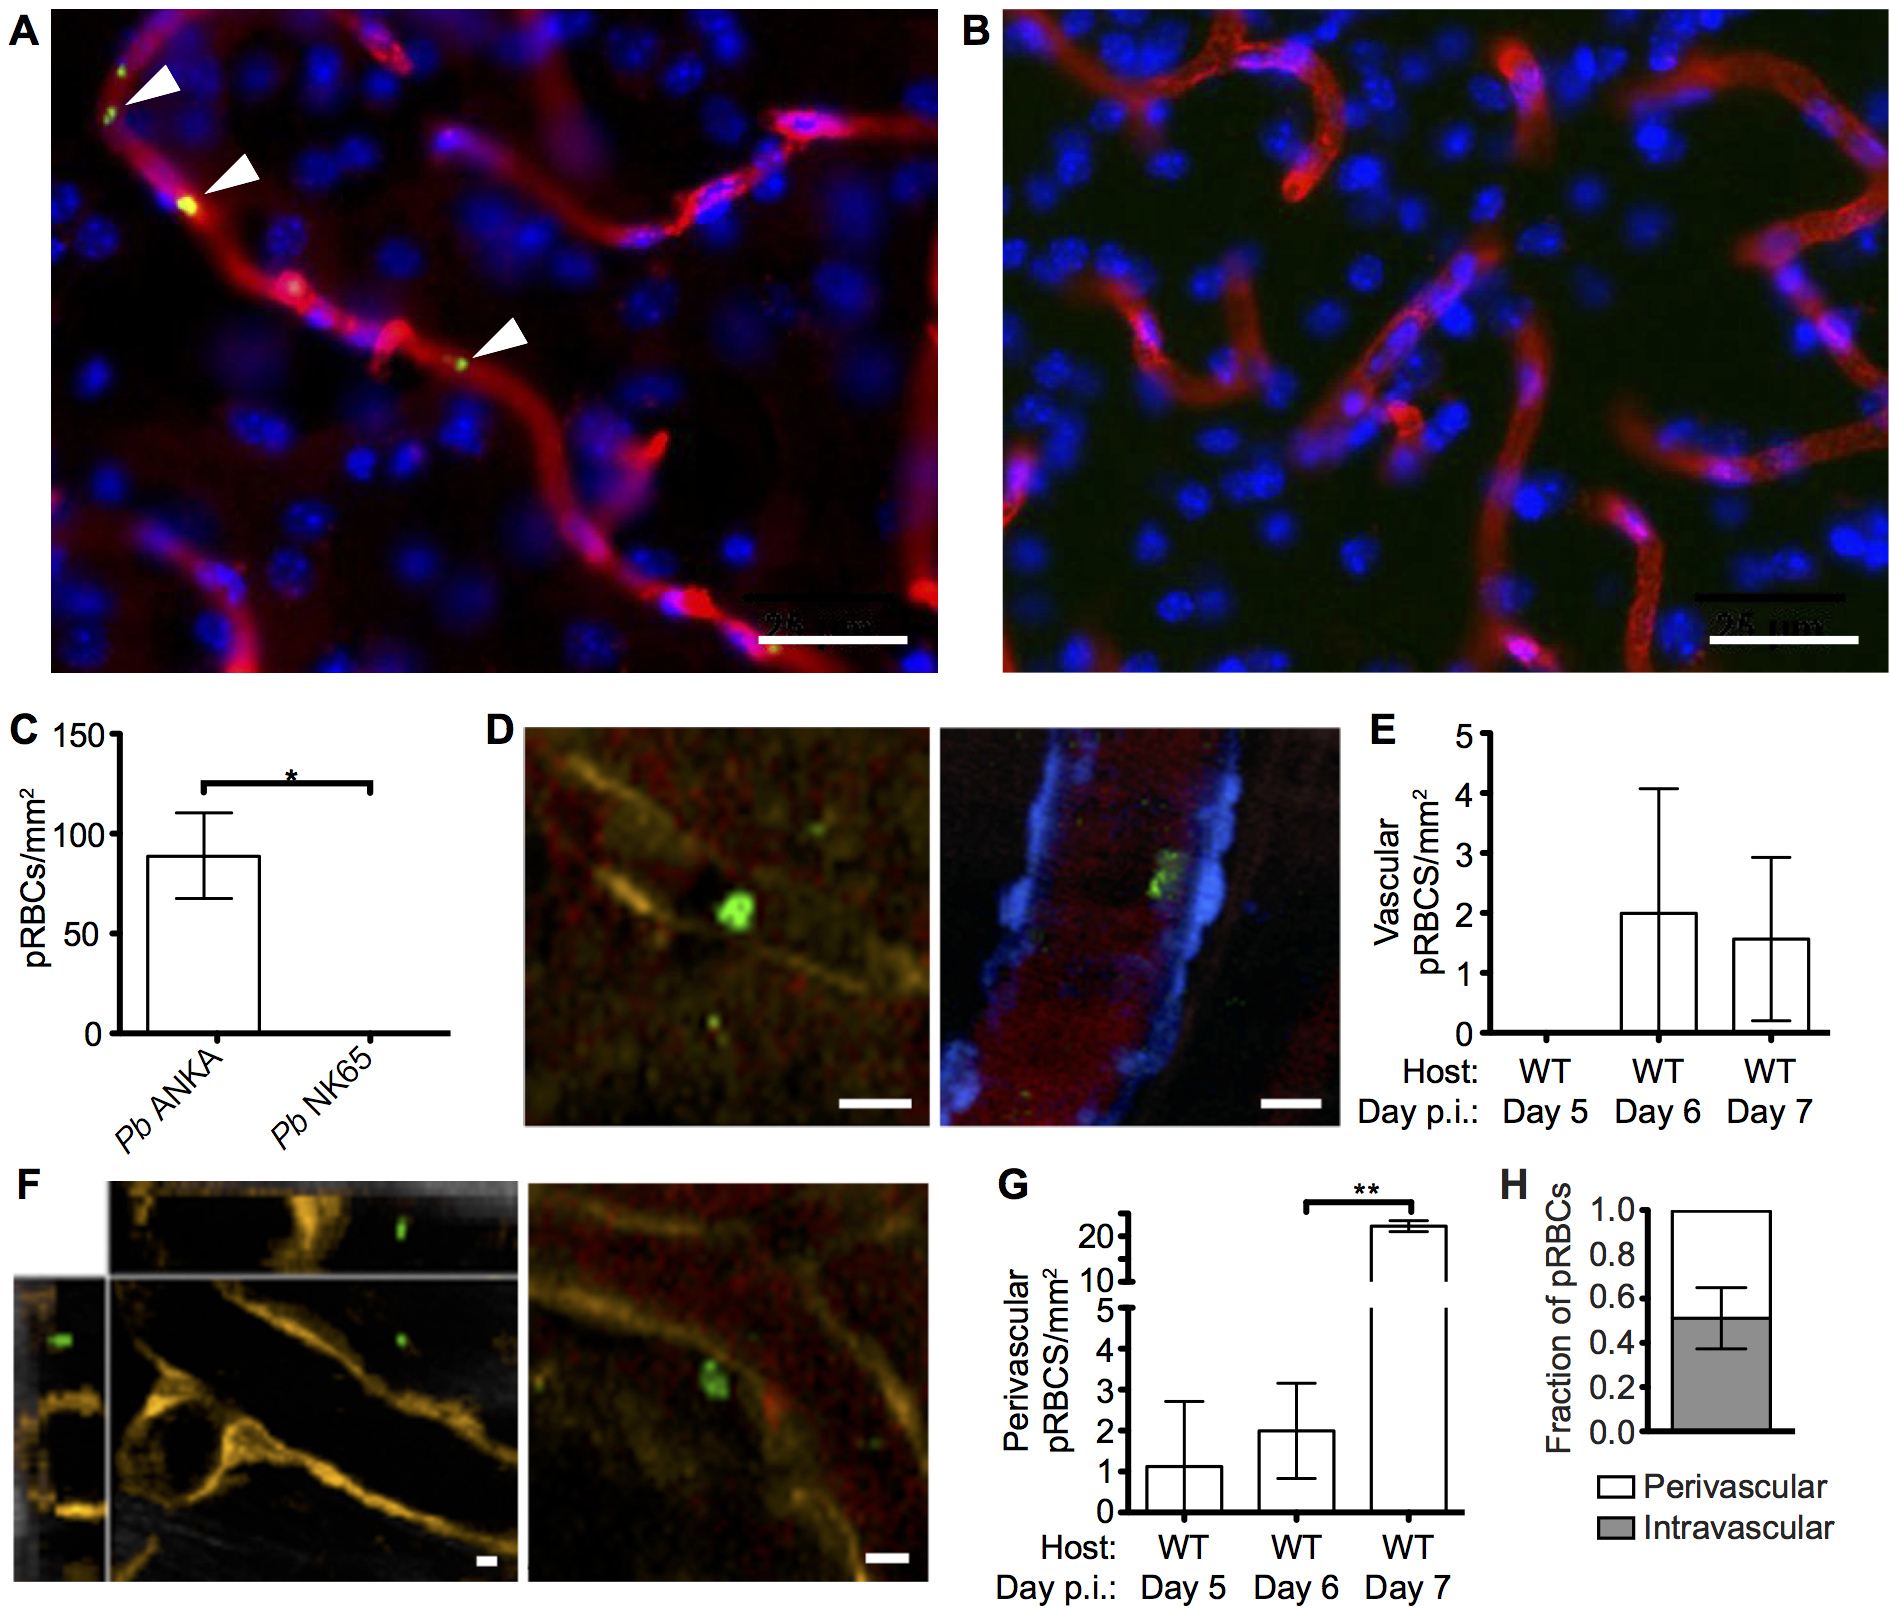 pRBCs make transient adhesive contact with endothelial cells and are deposited within the perivascular space of the meninges of mice with ECM.